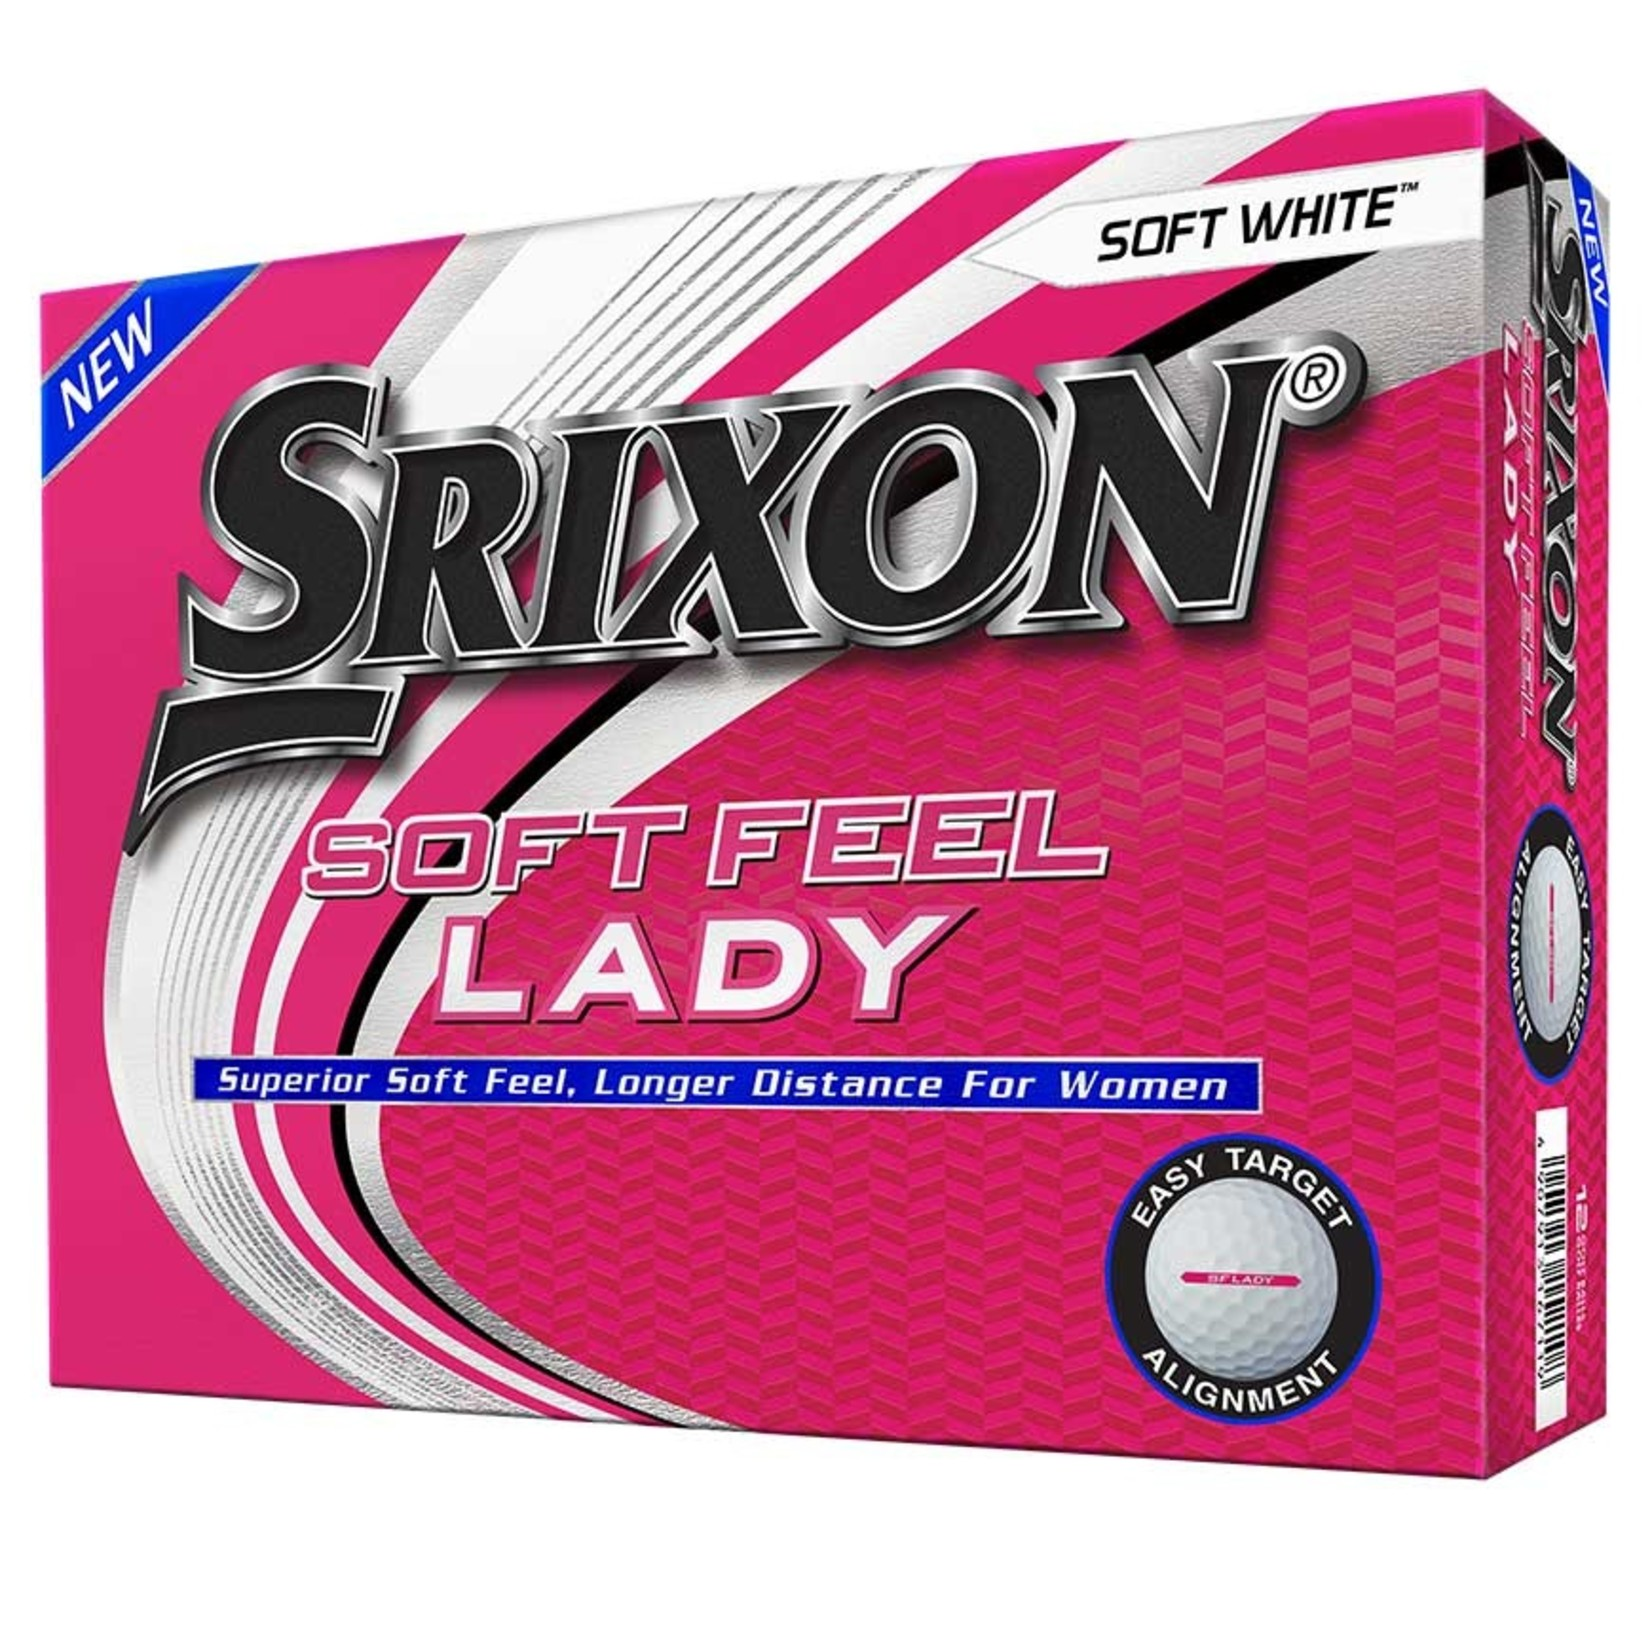 Srixon Srixon Soft Feel Lady 7 Dozen